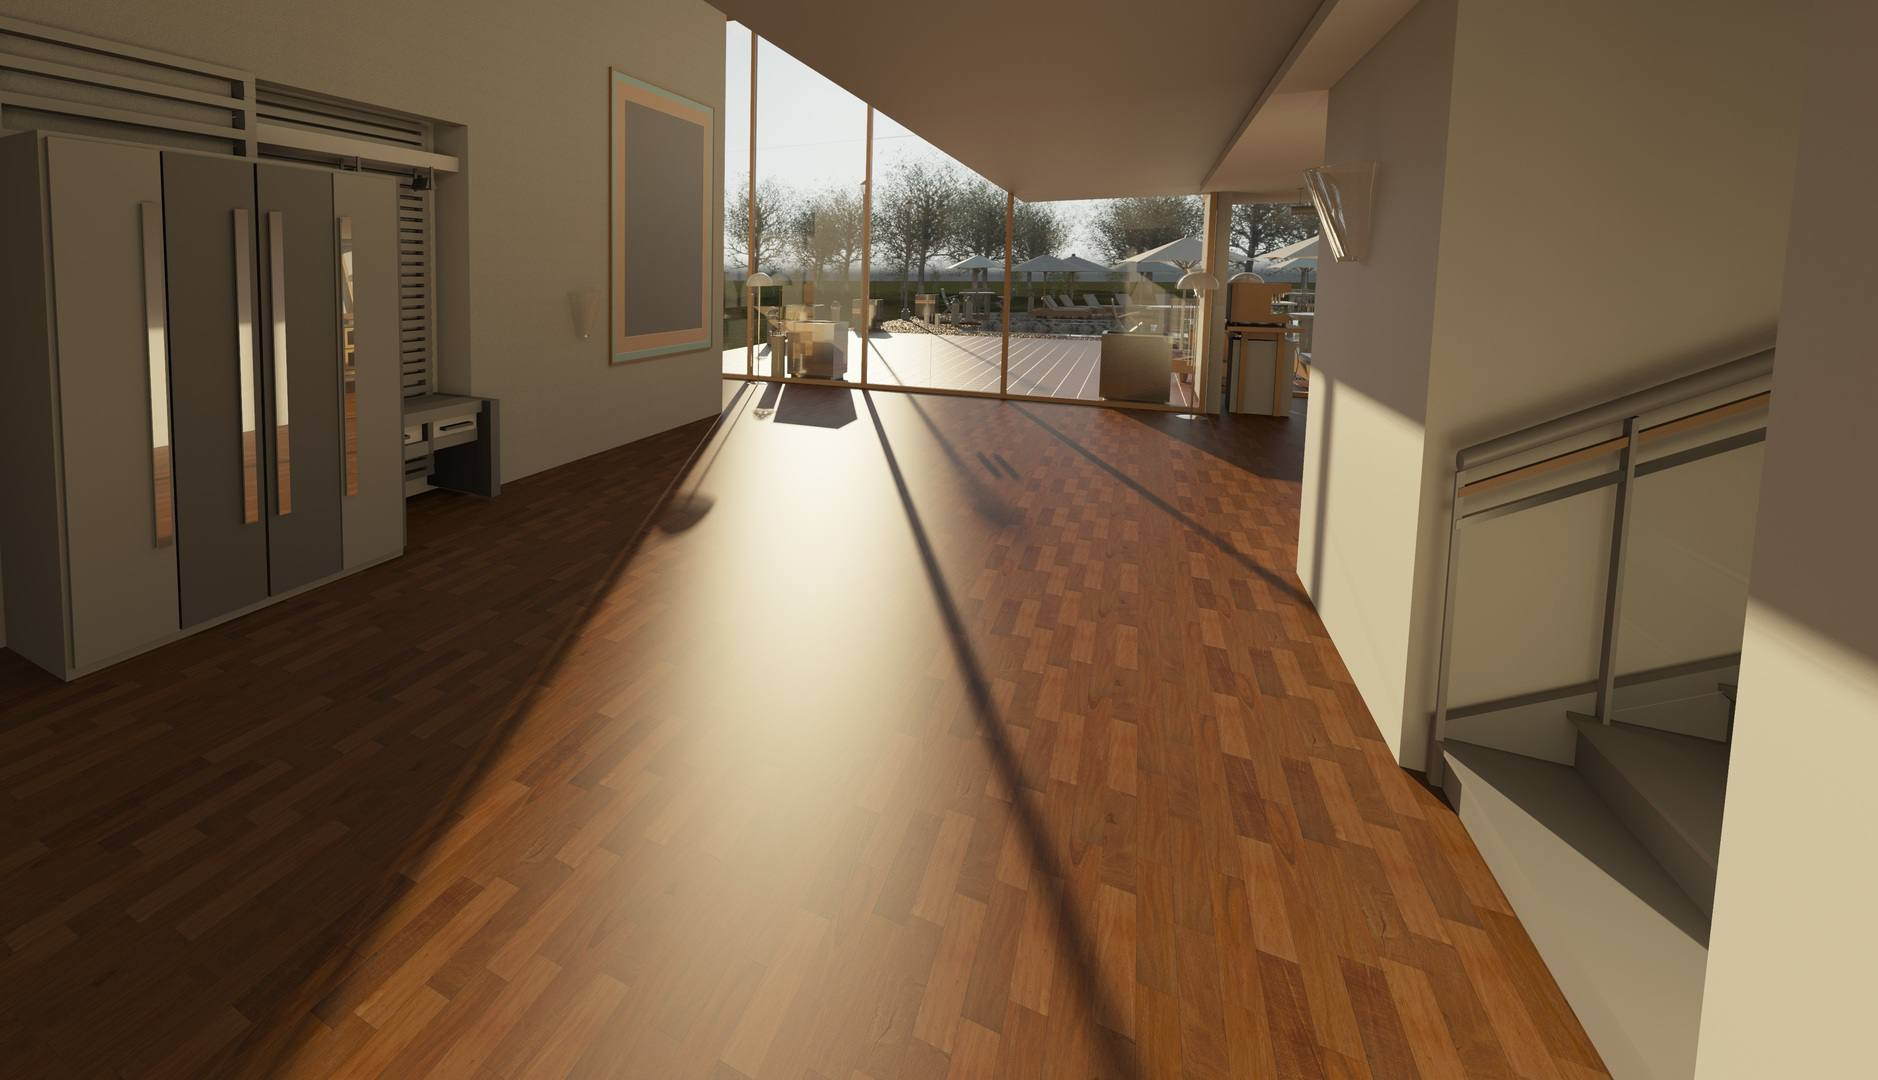 hardwood floor refinishing wilmington delaware of common flooring types currently used in renovation and building with regard to architecture wood house floor interior window 917178 pxhere com 5ba27a2cc9e77c00503b27b9